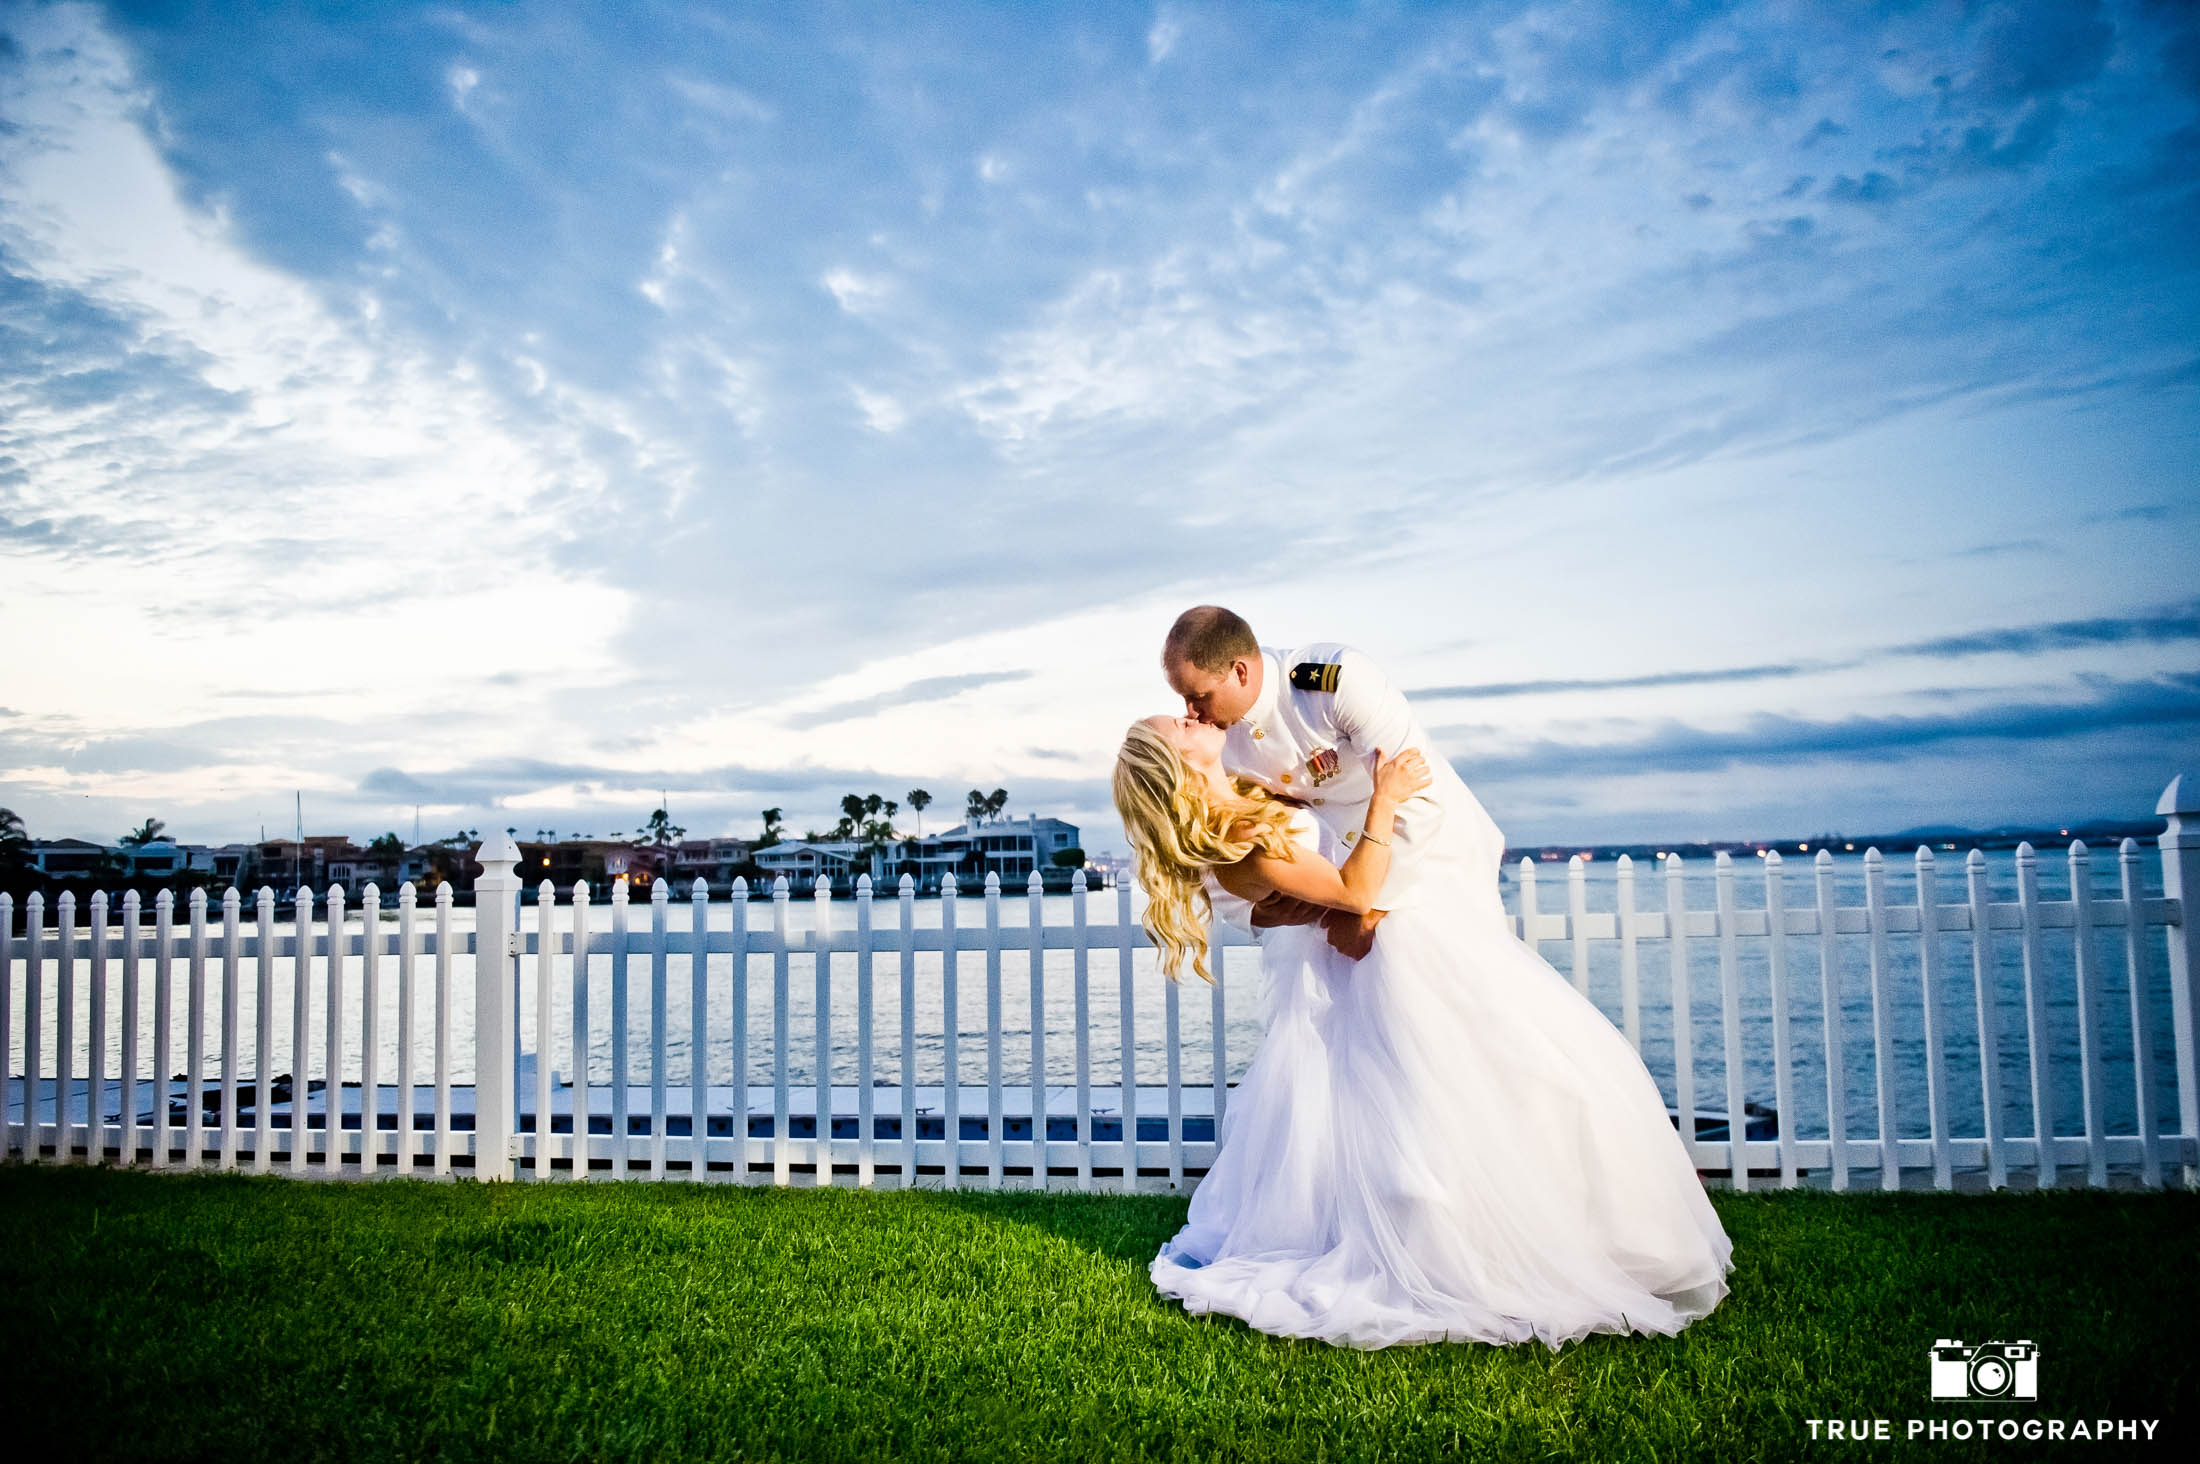 Bride and Military Groom dip for kiss in front of white fence and beach after wedding in Coronado, California